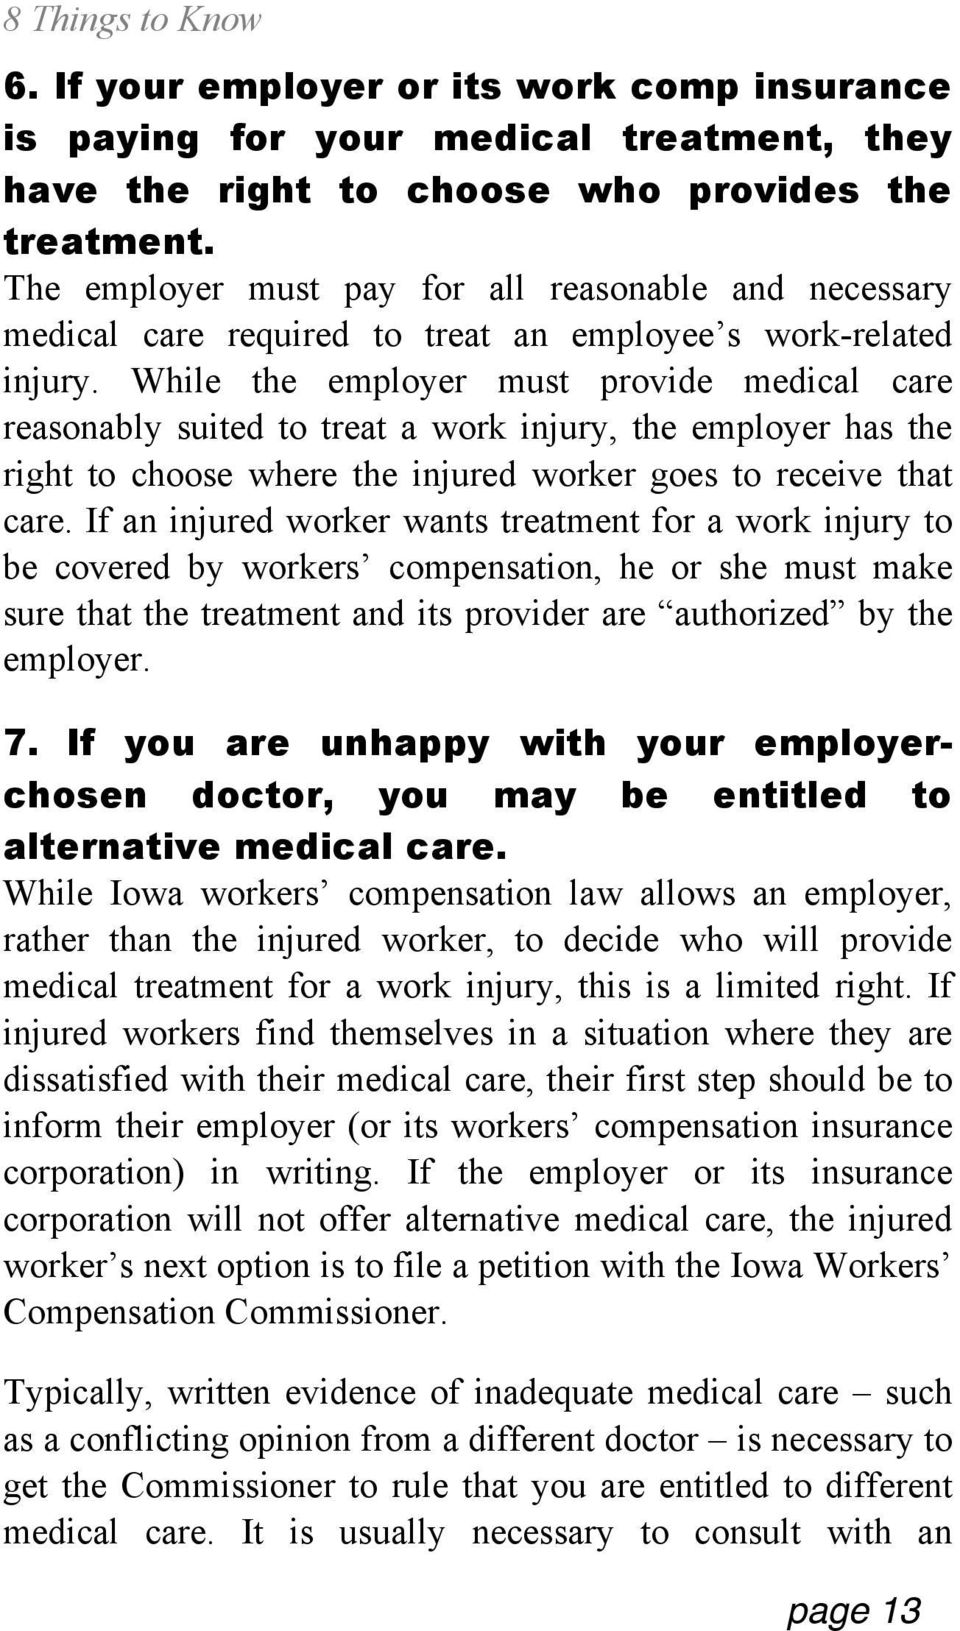 While the employer must provide medical care reasonably suited to treat a work injury, the employer has the right to choose where the injured worker goes to receive that care.